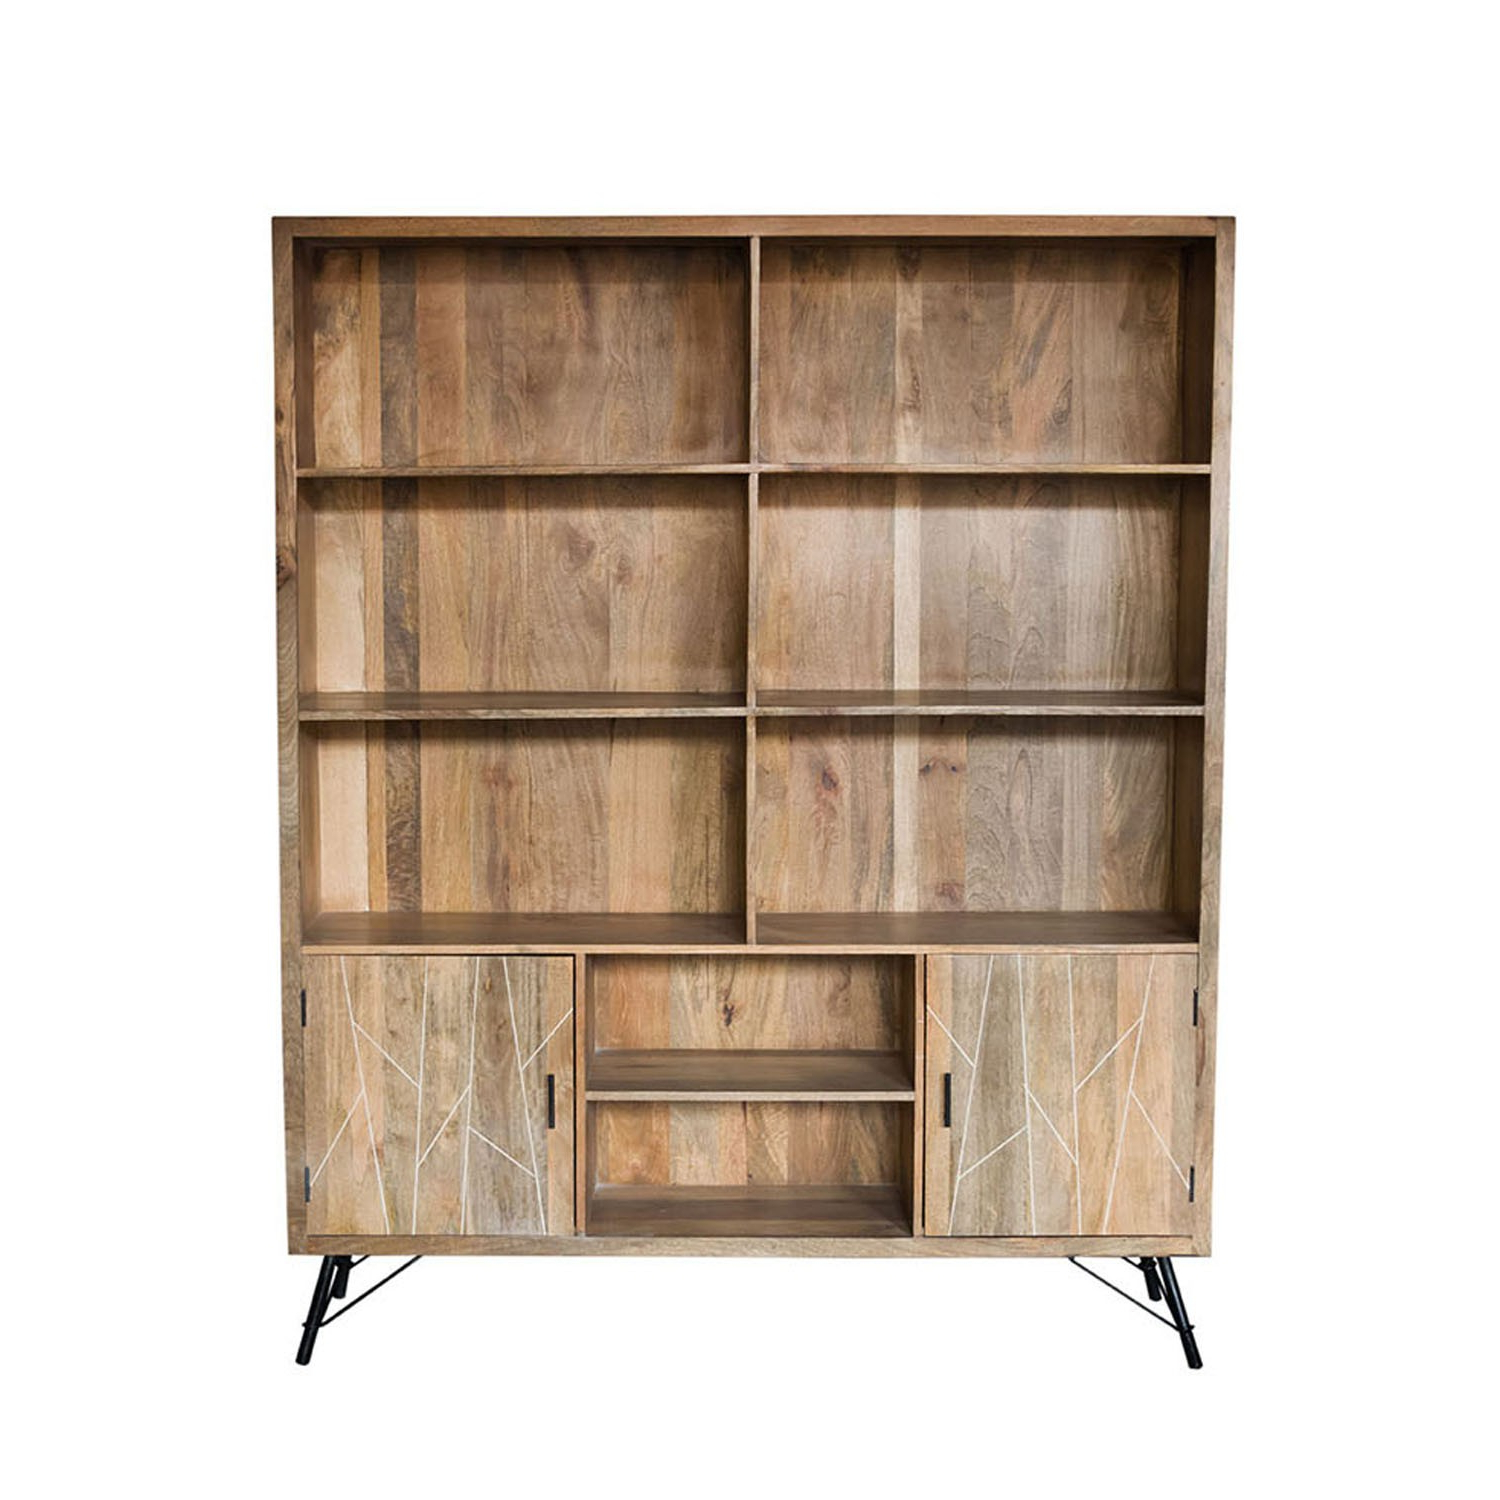 Current Natural Mango Wood Finish Sideboards For Mosaic Small Bookshelf/iron & Mango Wood/natural Finish/33*17* (View 5 of 20)